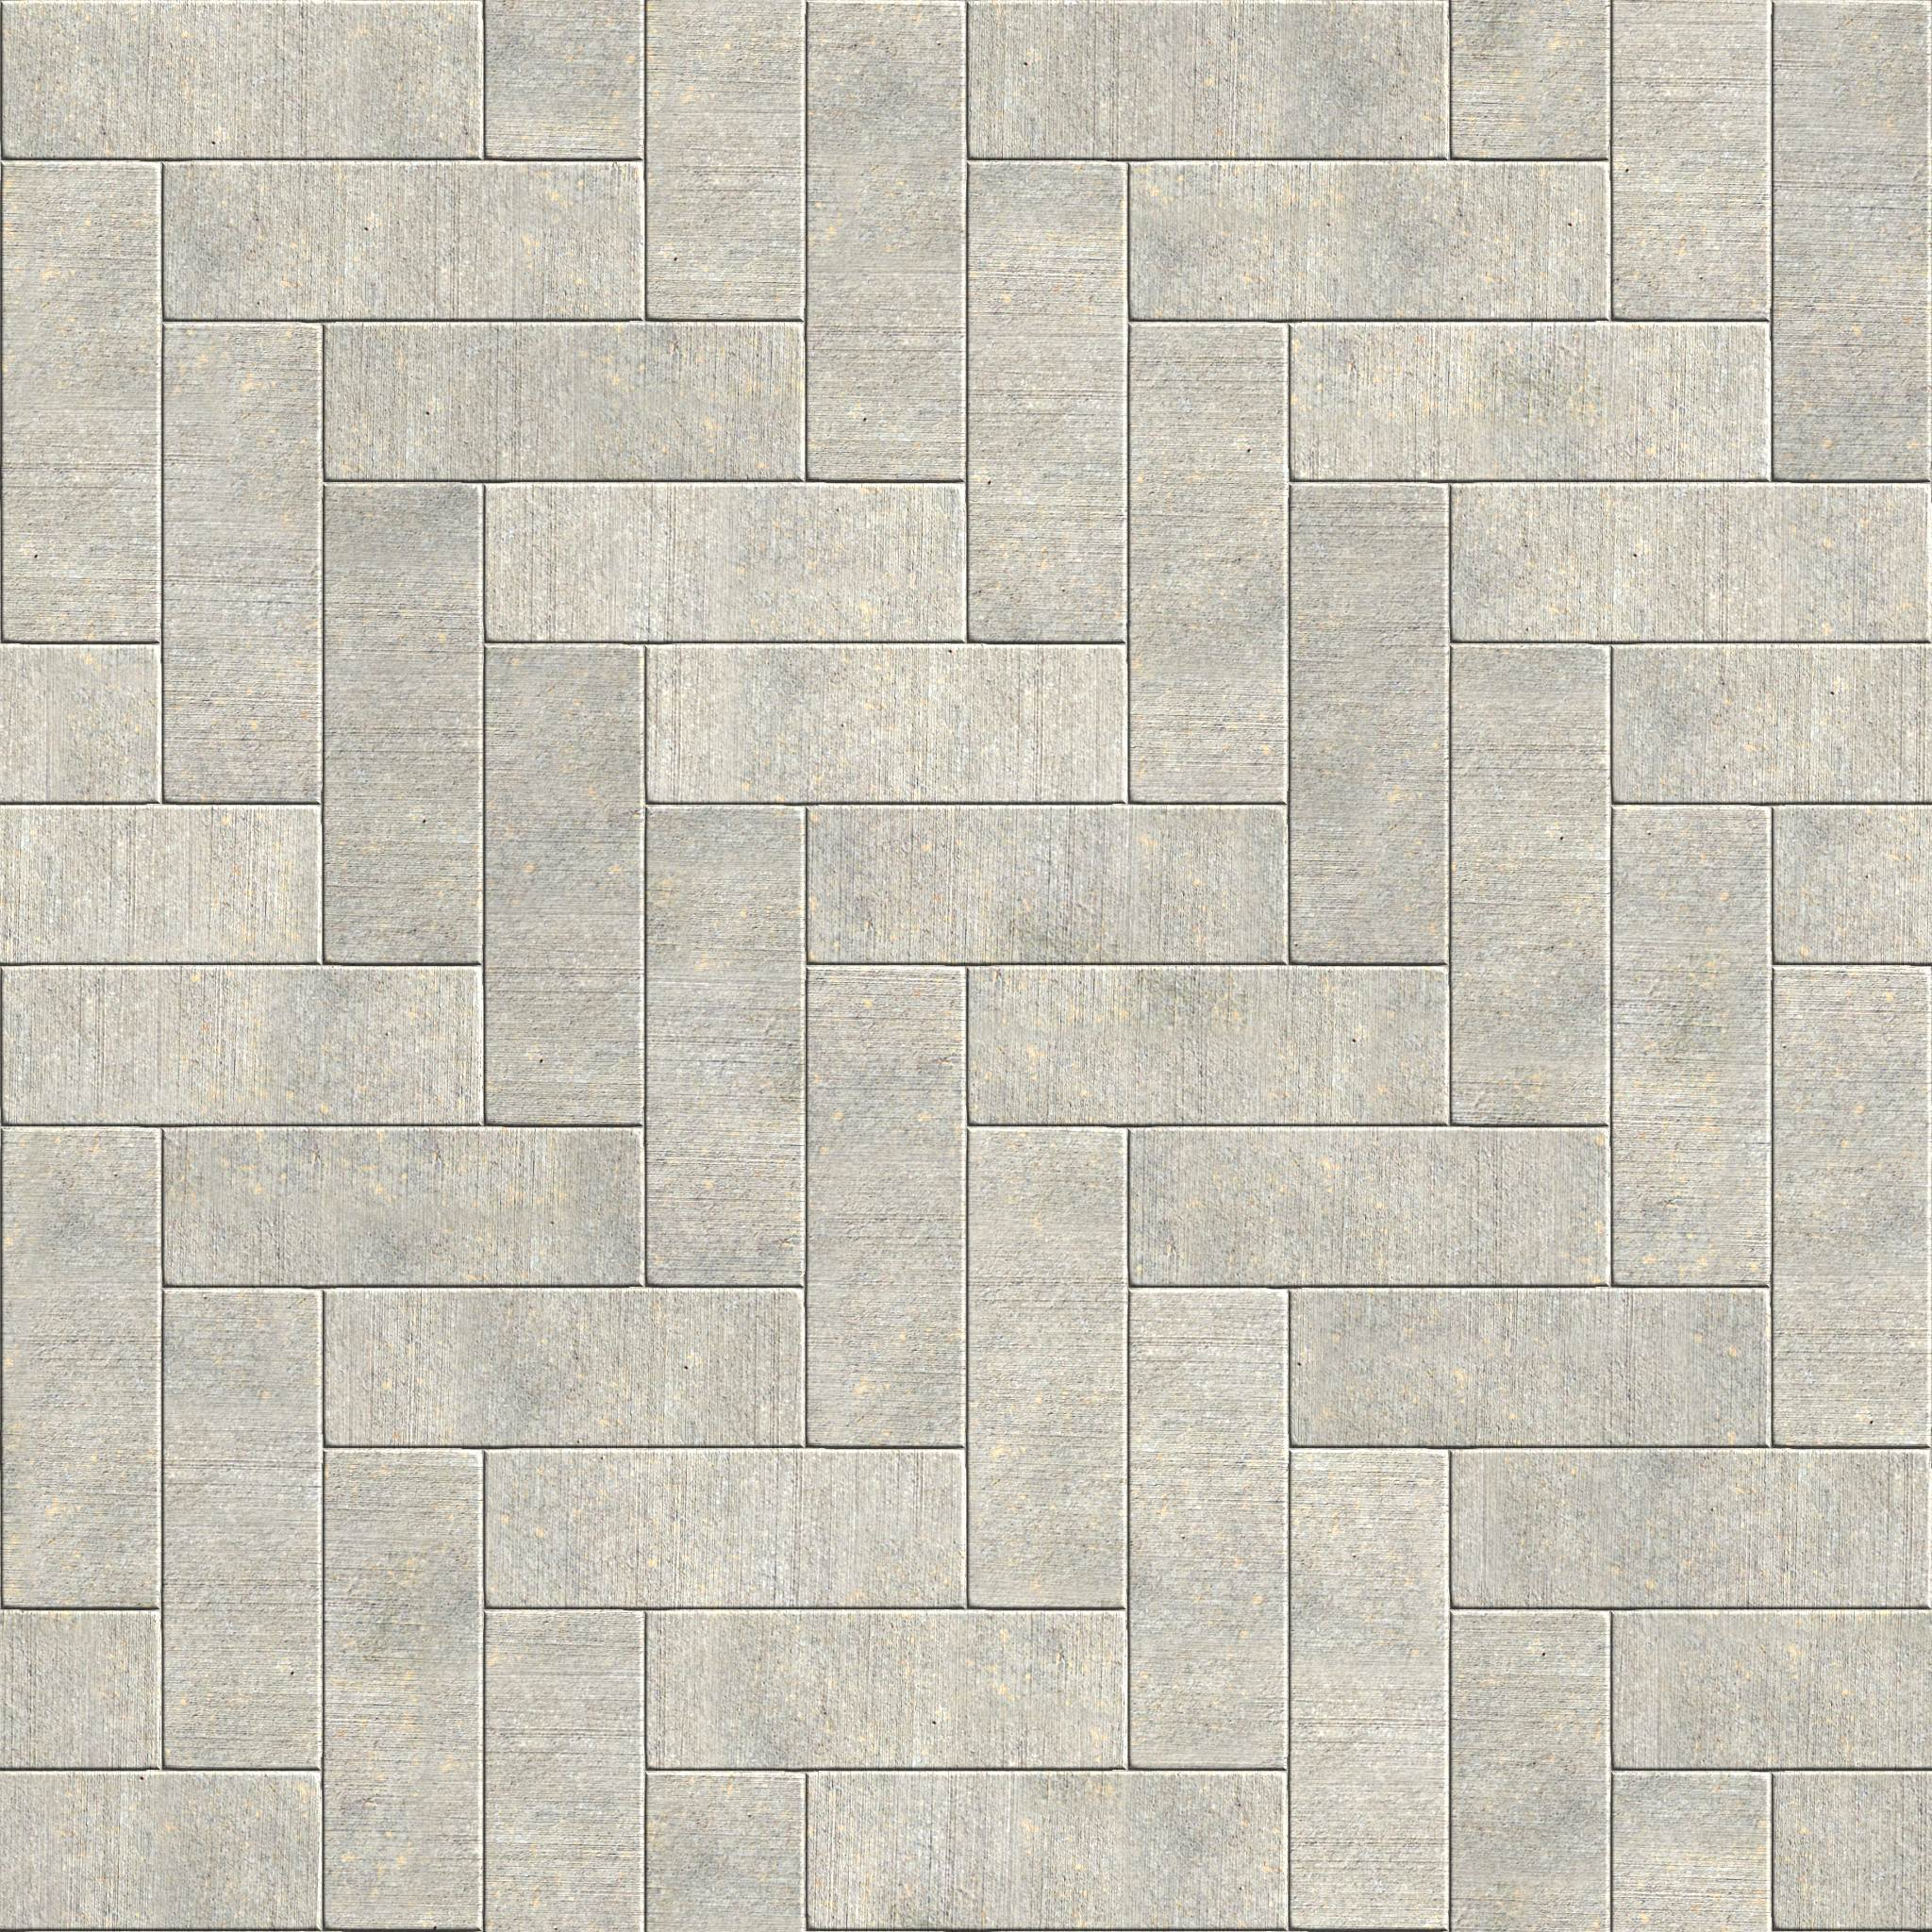 Camoflage seamless texture maps free to use page 4 for Exterior floor tiles texture